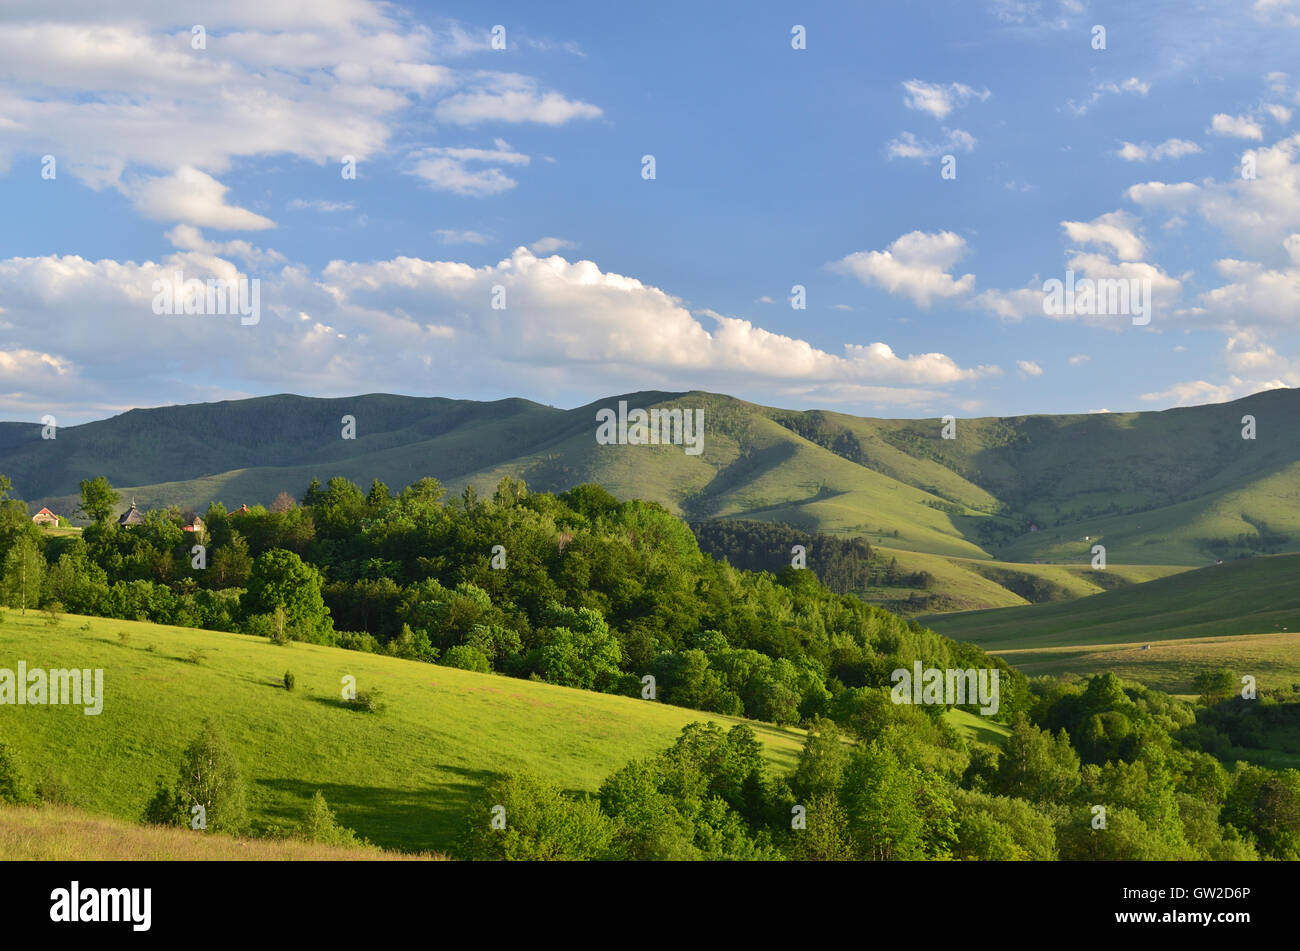 Landscape of Zlatibor Mountain. Green meadows and hills under blue sky with clouds in springtime - Stock Image